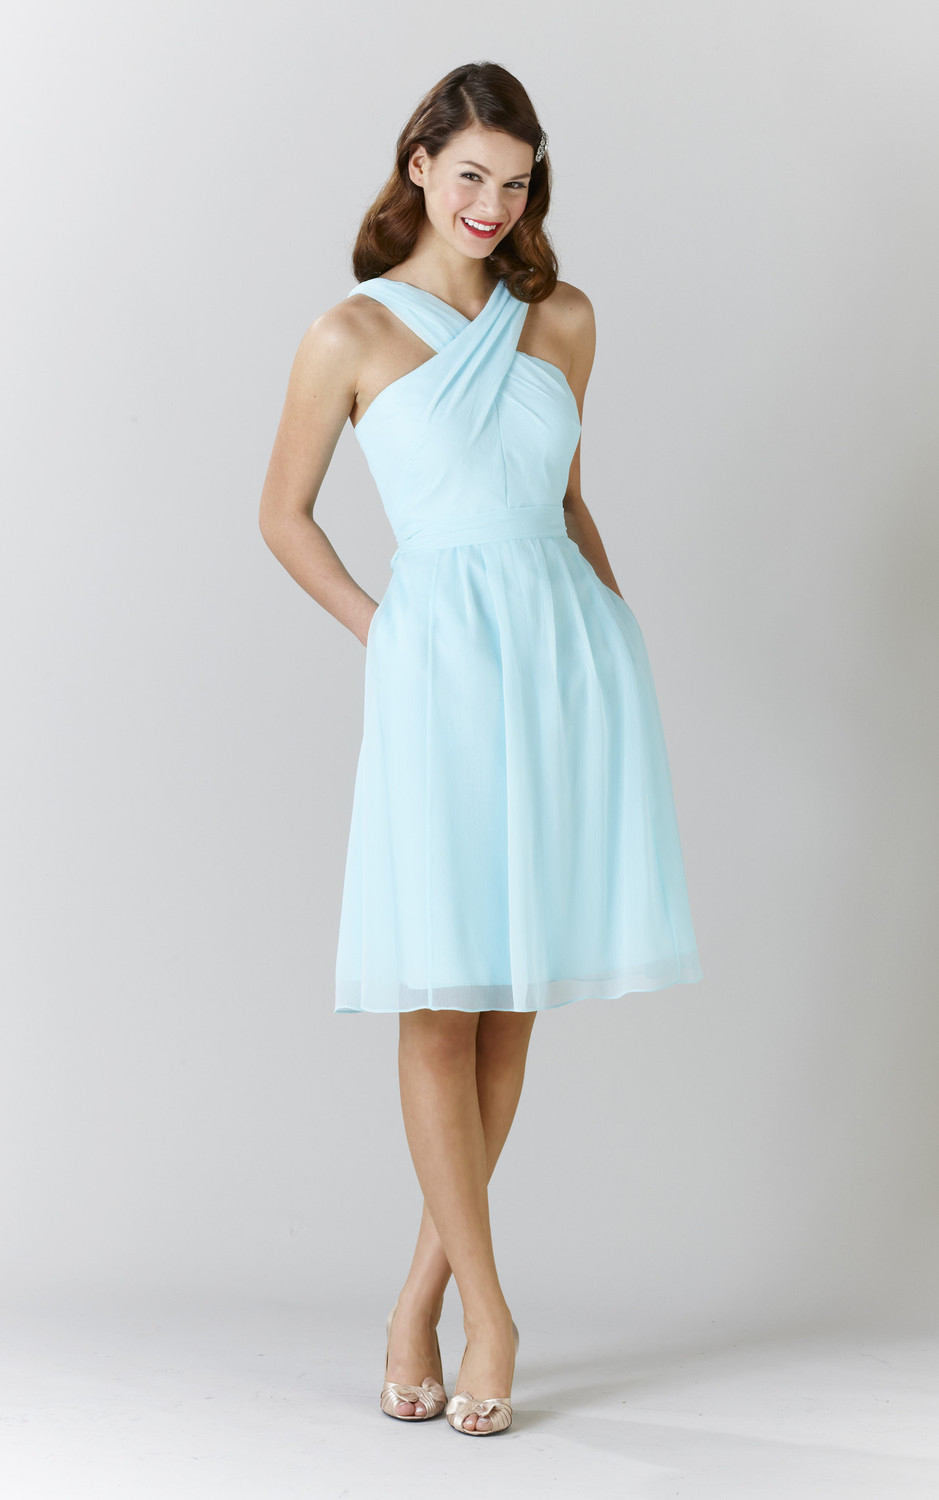 Nice Bridesmaid Dresses For Juniors Image Collection - All Wedding ...